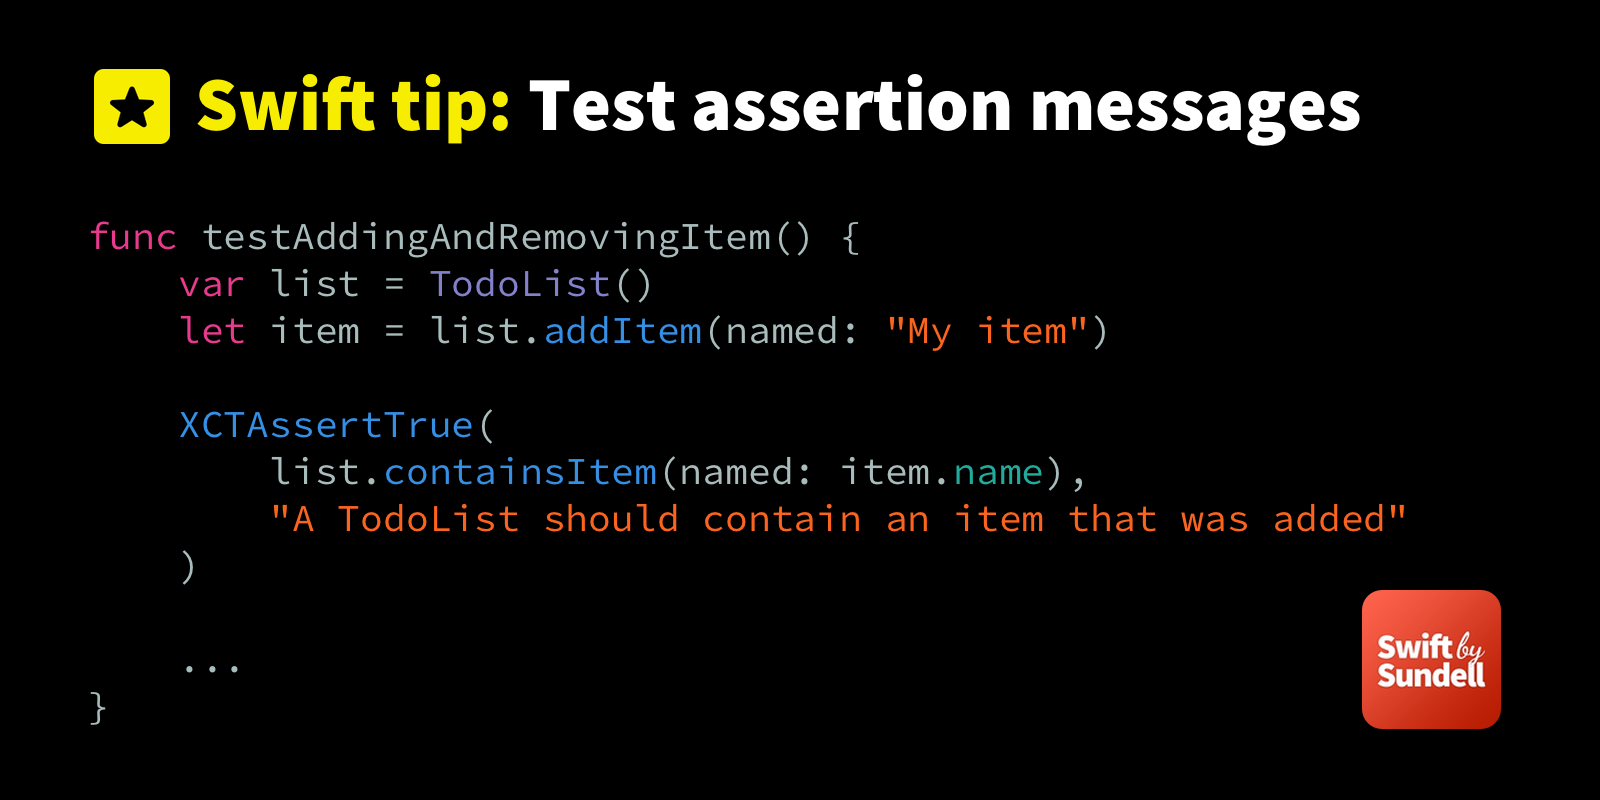 Tip: Using test assertion messages as comments